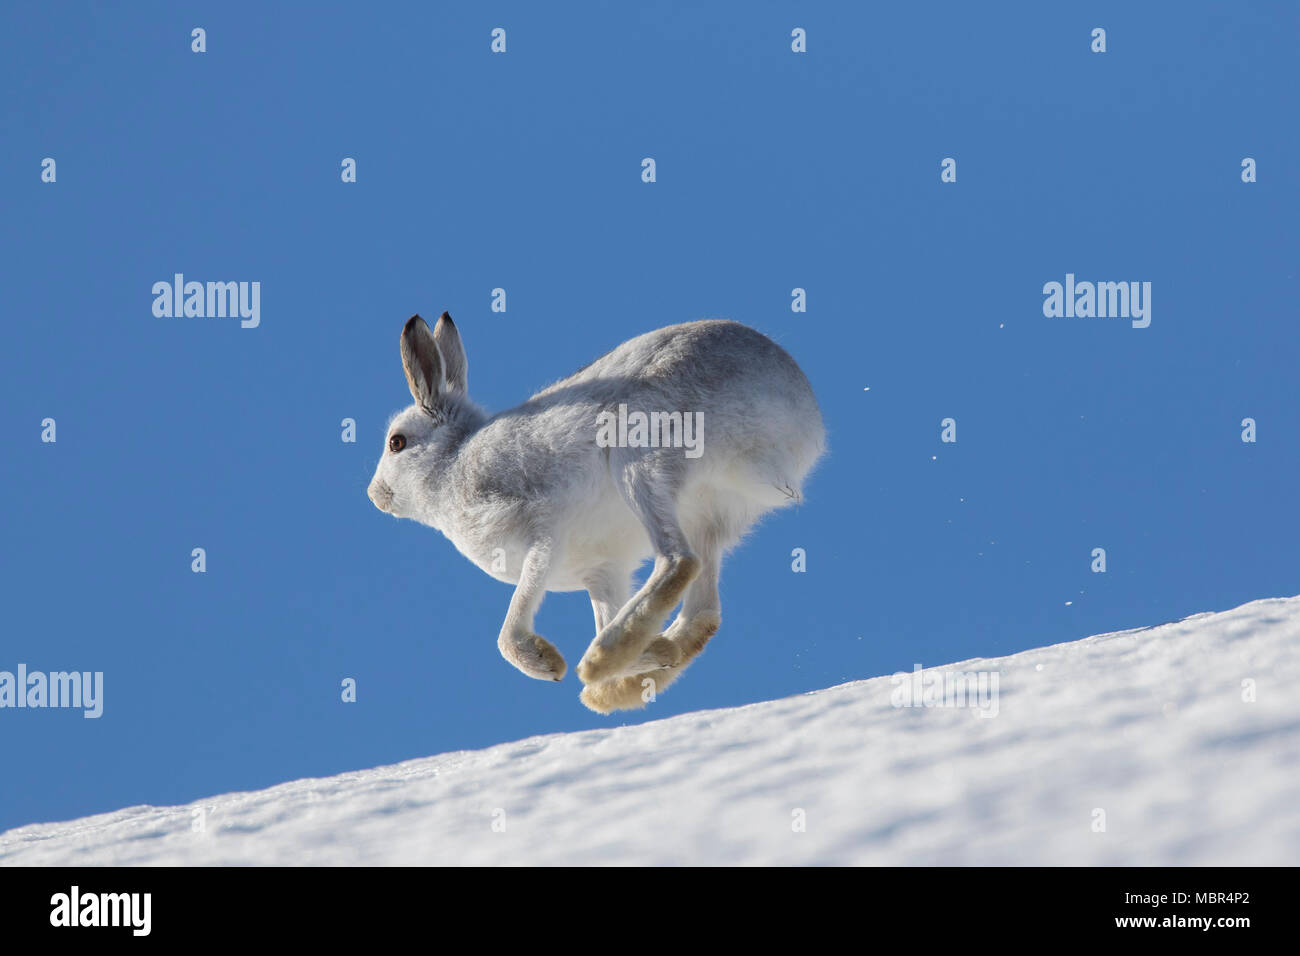 Mountain hare / Alpine hare / snow hare (Lepus timidus) in winter pelage running in the snow down mountain slope - Stock Image